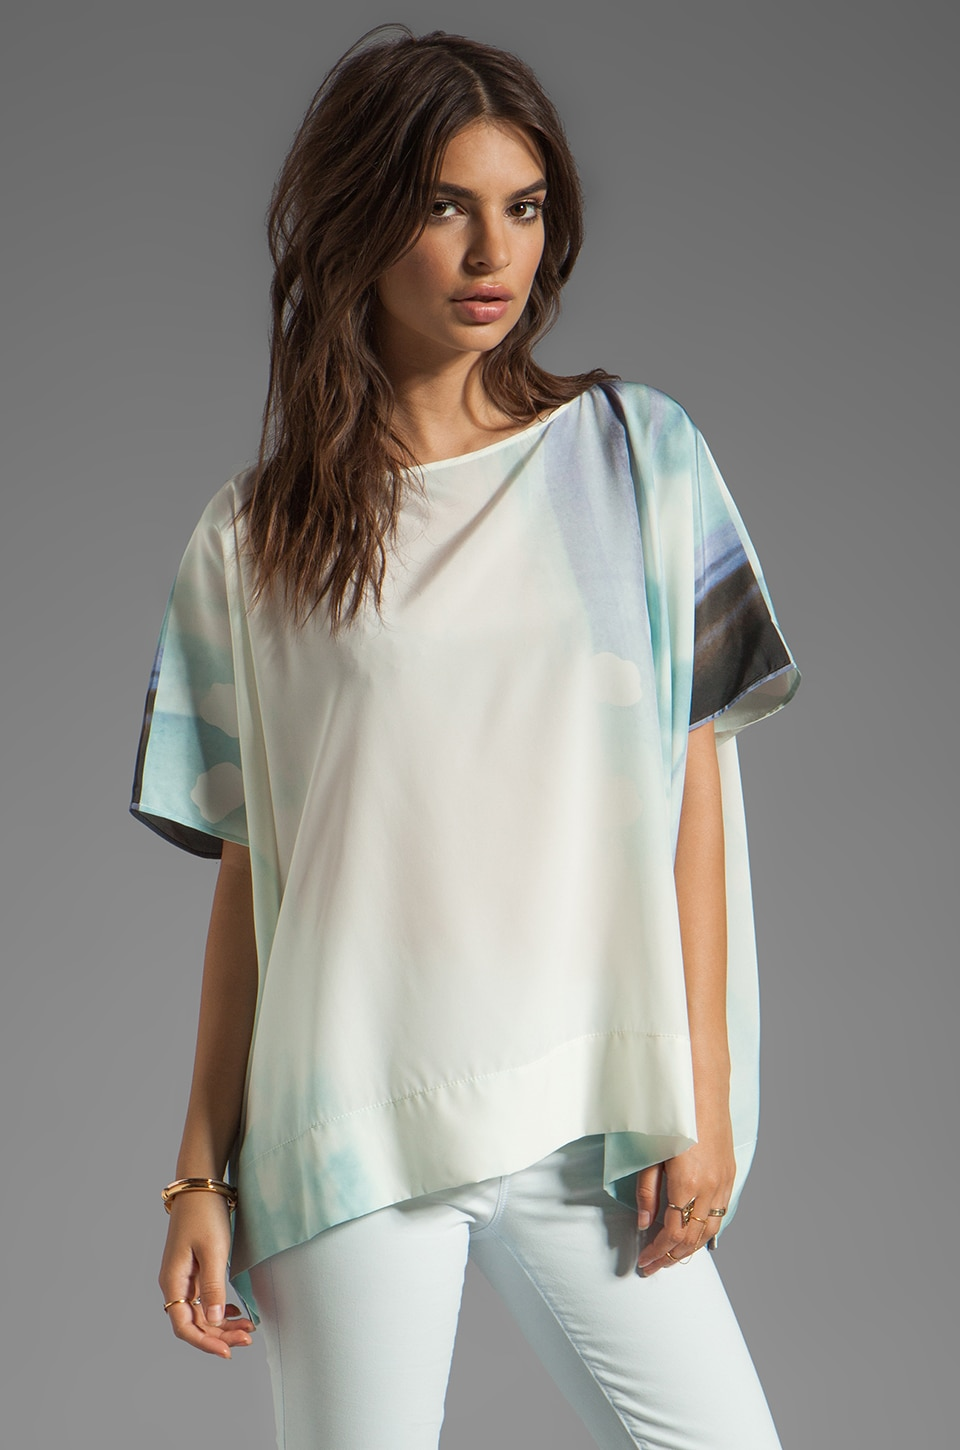 Diane von Furstenberg New Hanky Top in Ethereal